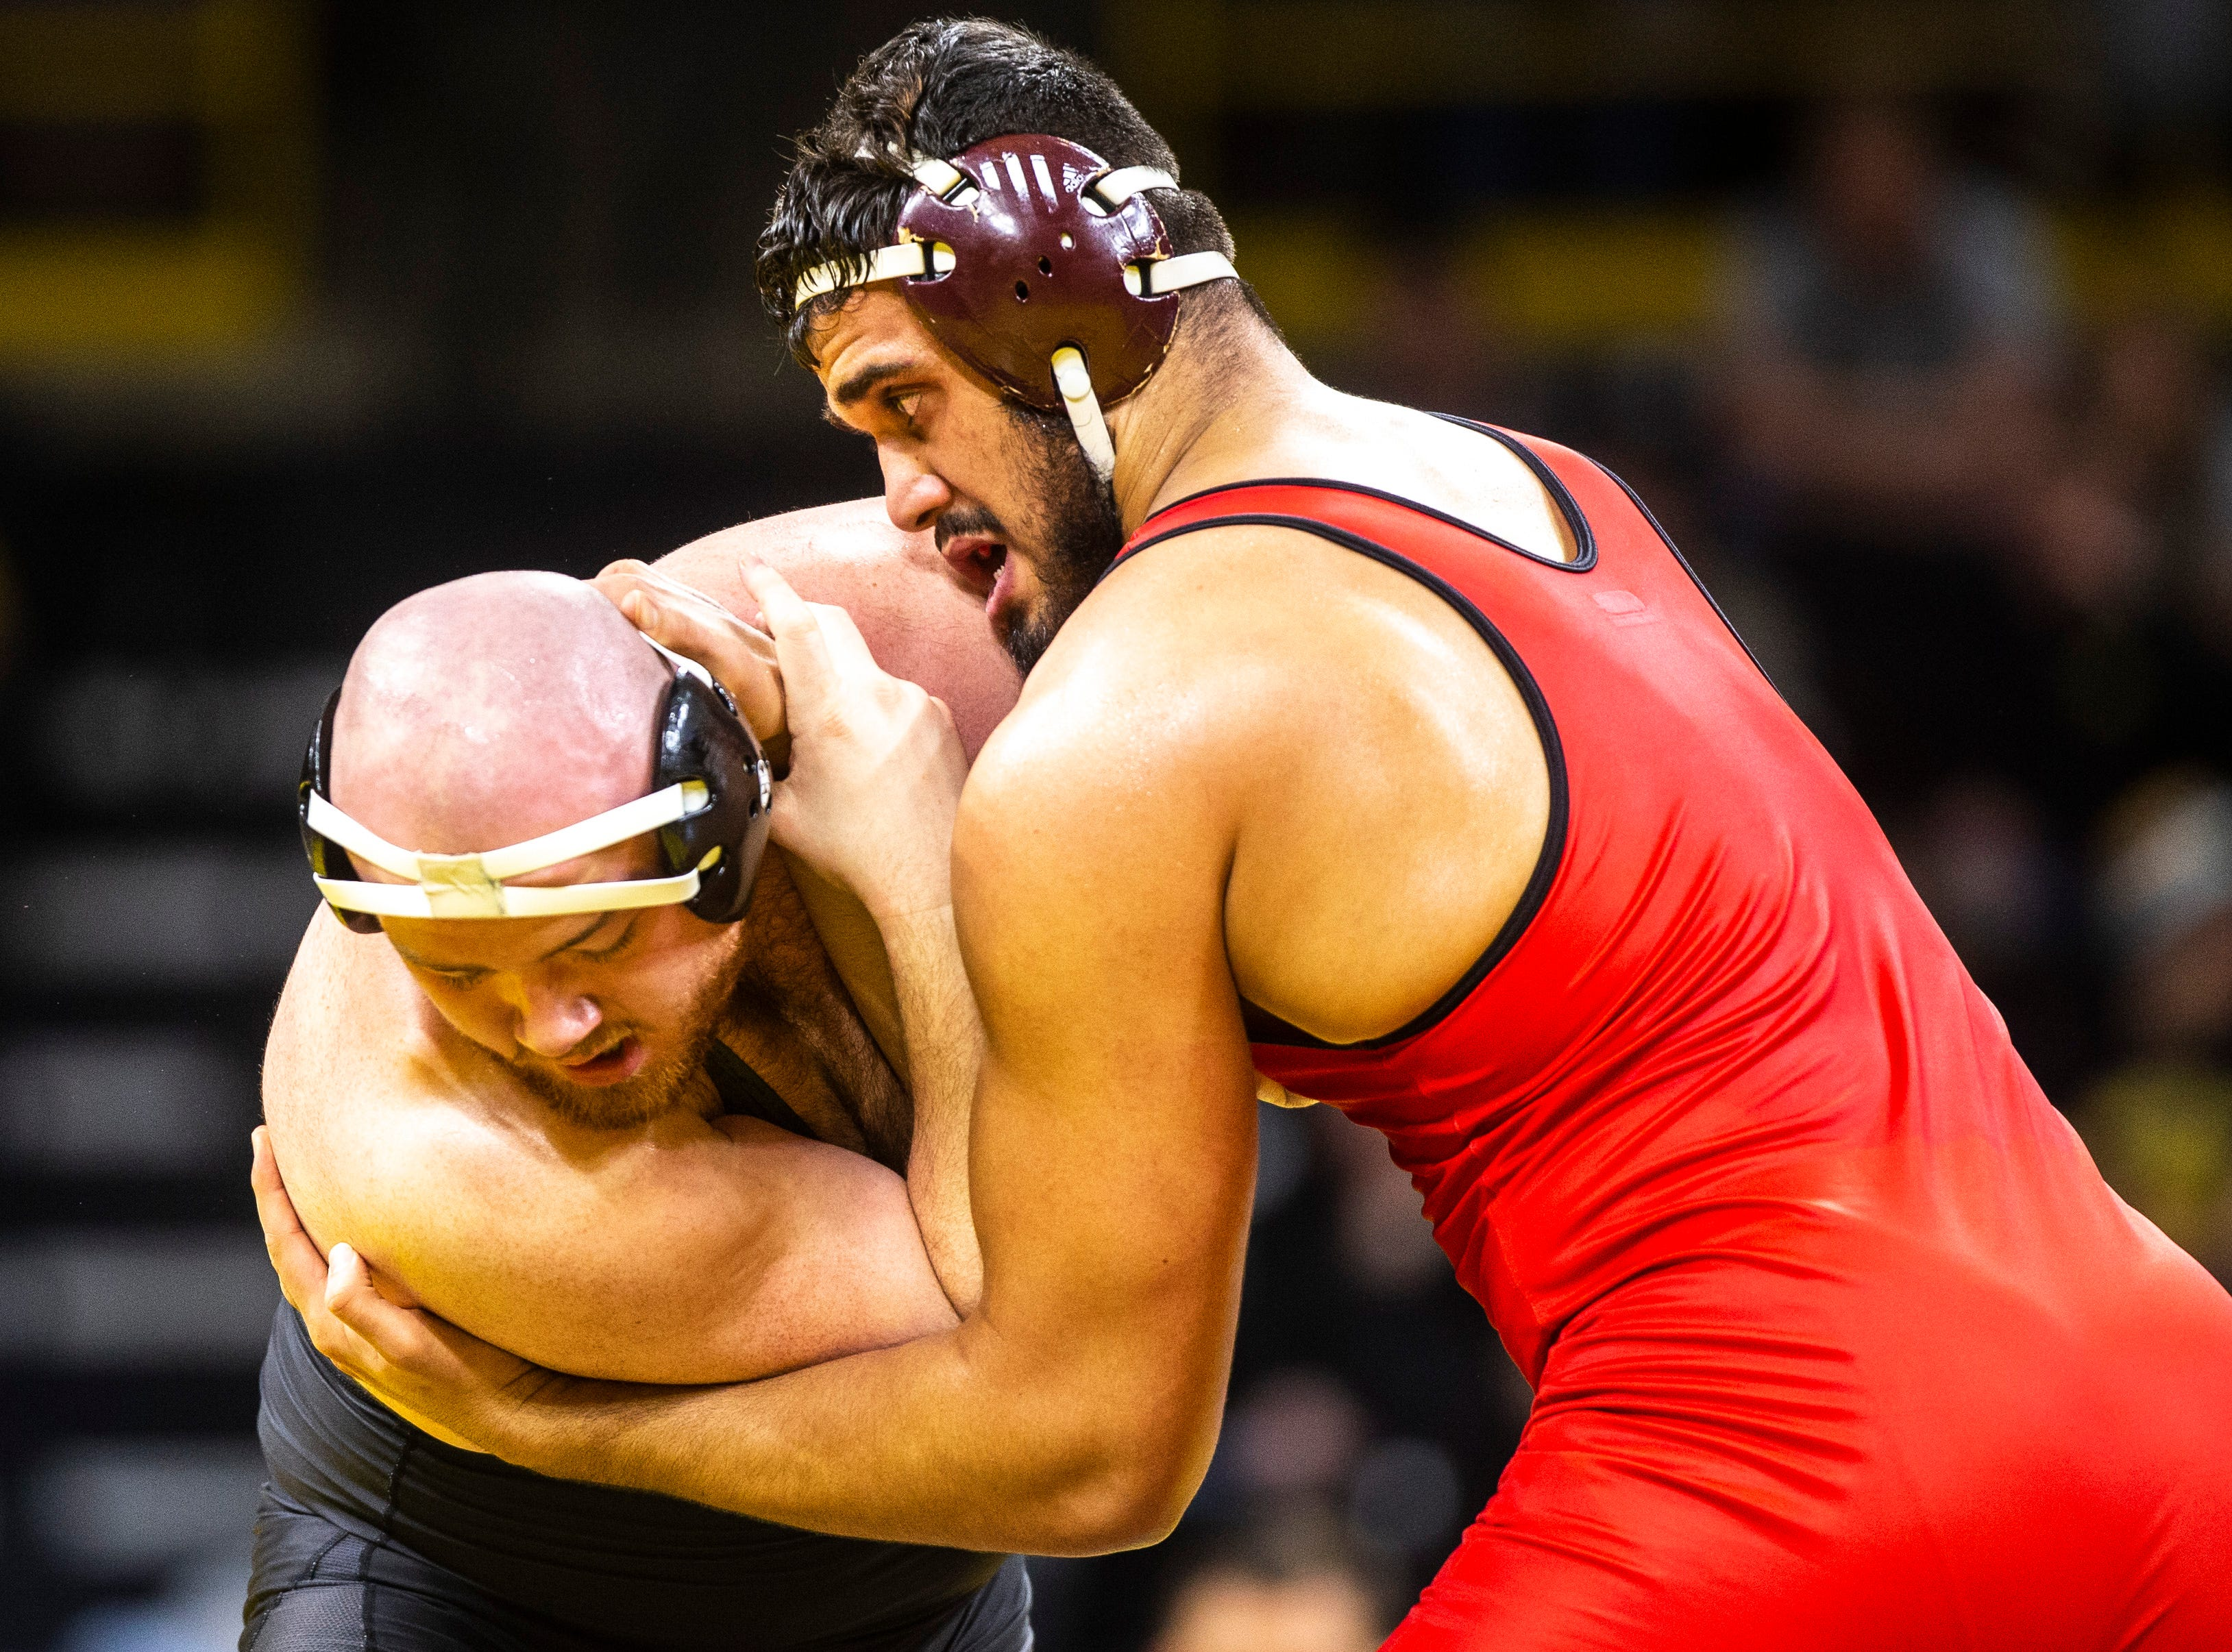 Iowa's Sam Stoll, left, wrestles Maryland's Youssif Hemida at 285 during a NCAA Big Ten Conference wrestling dual on Friday, Feb. 8, 2019 at Carver-Hawkeye Arena in Iowa City, Iowa.